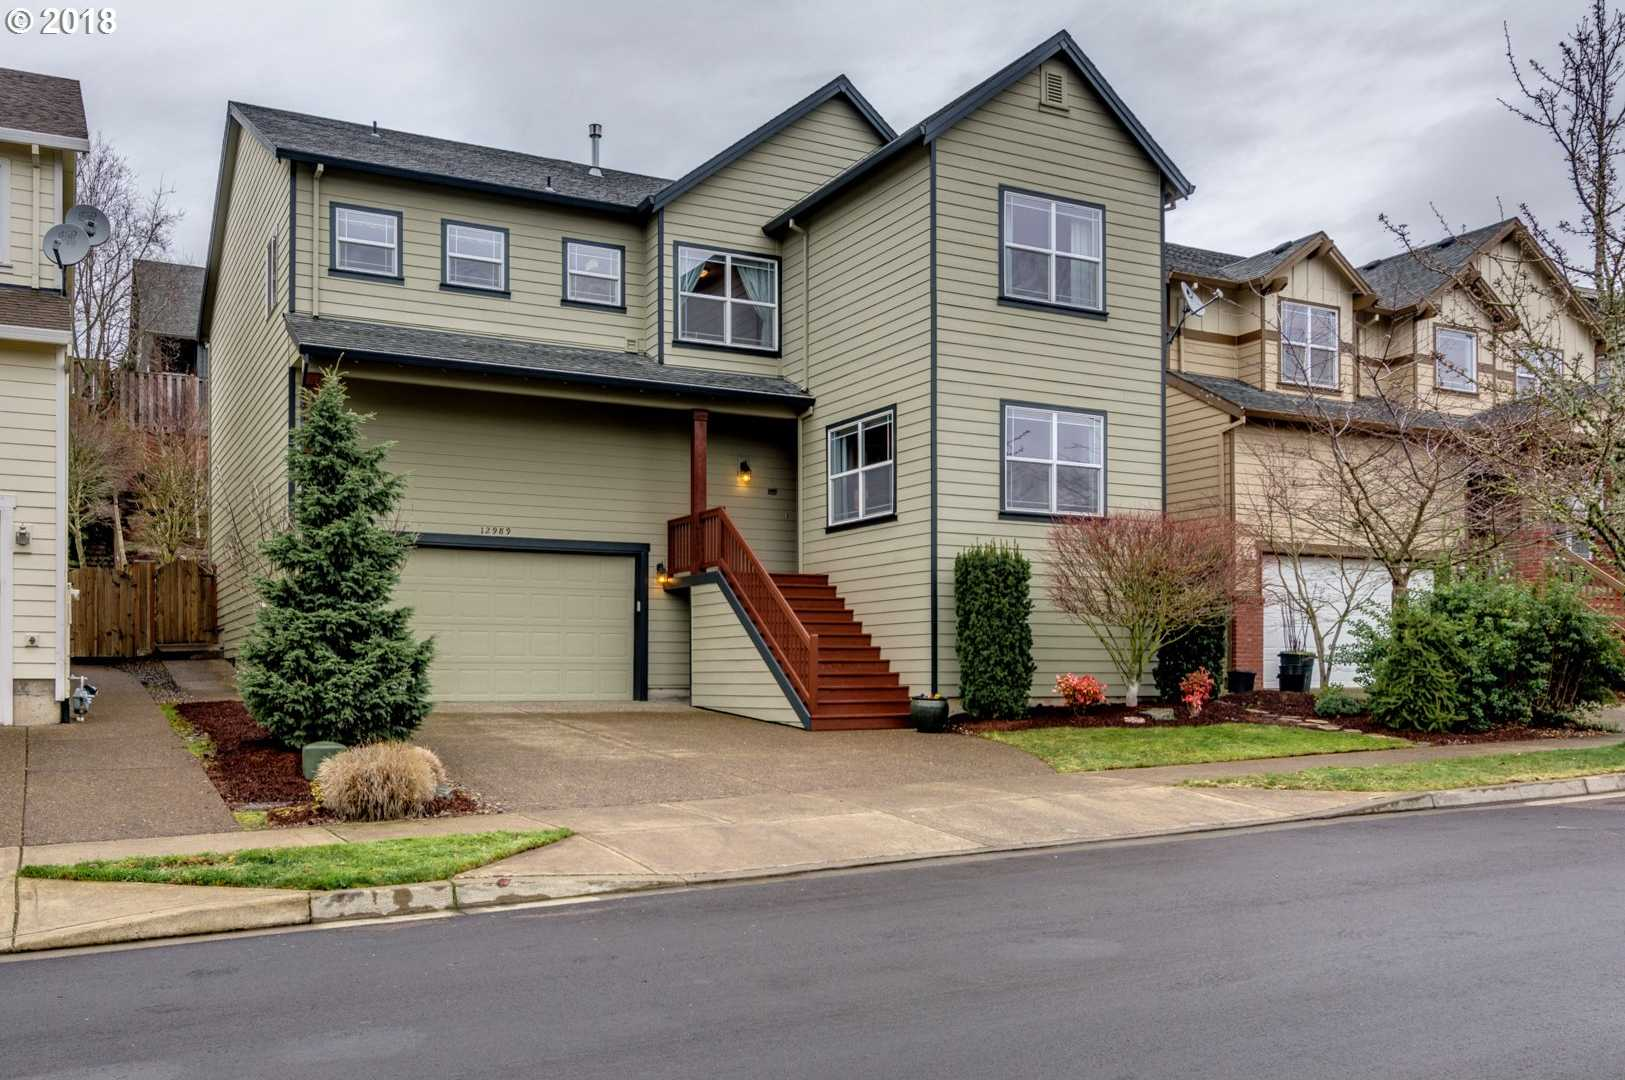 $500,000 - 4Br/3Ba -  for Sale in Tigard